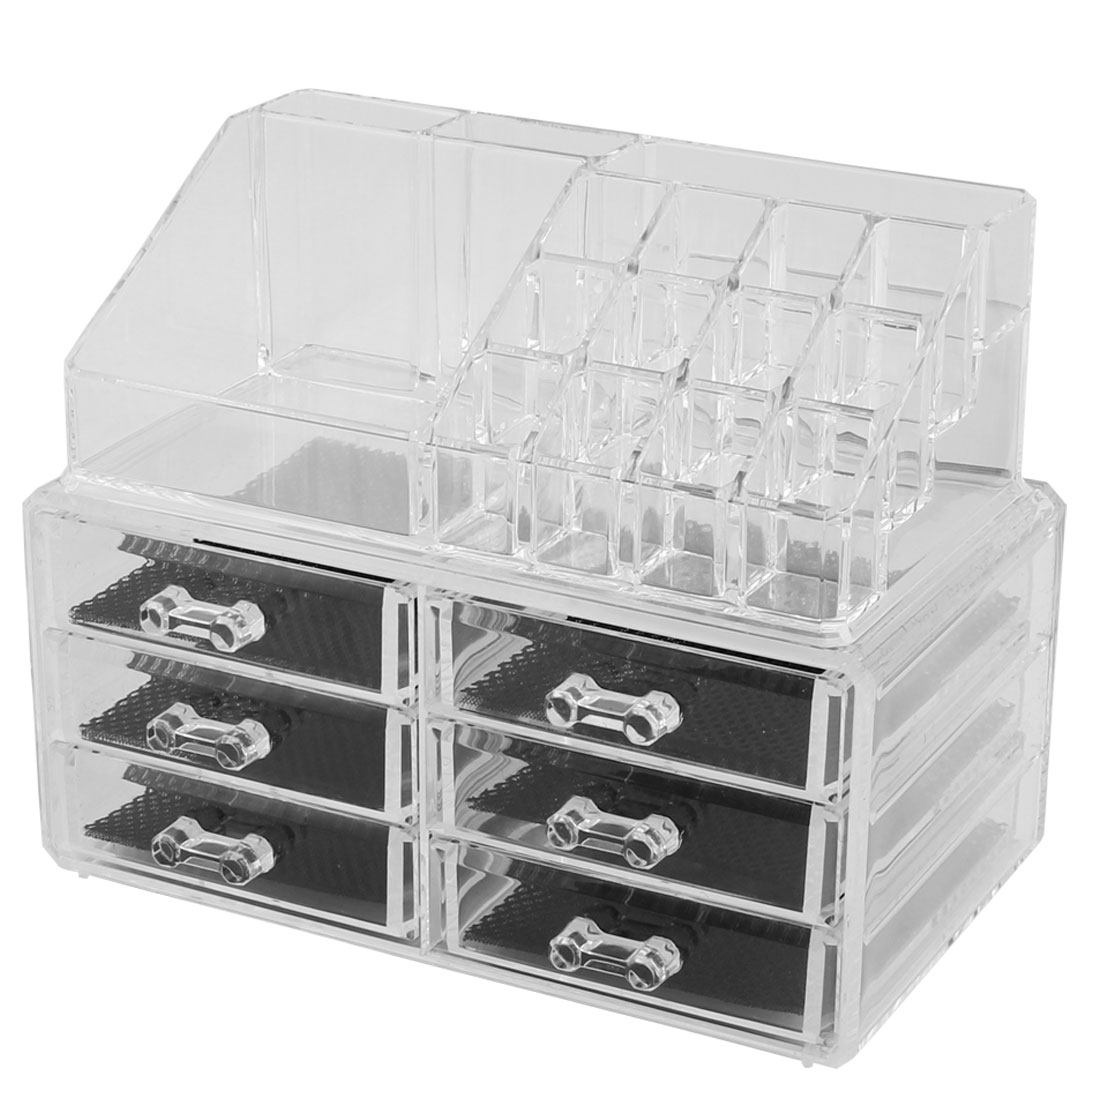 Home Acrylic Multichamber Jewelry Makeup Storage Organizer Display Box Set 2 in 1